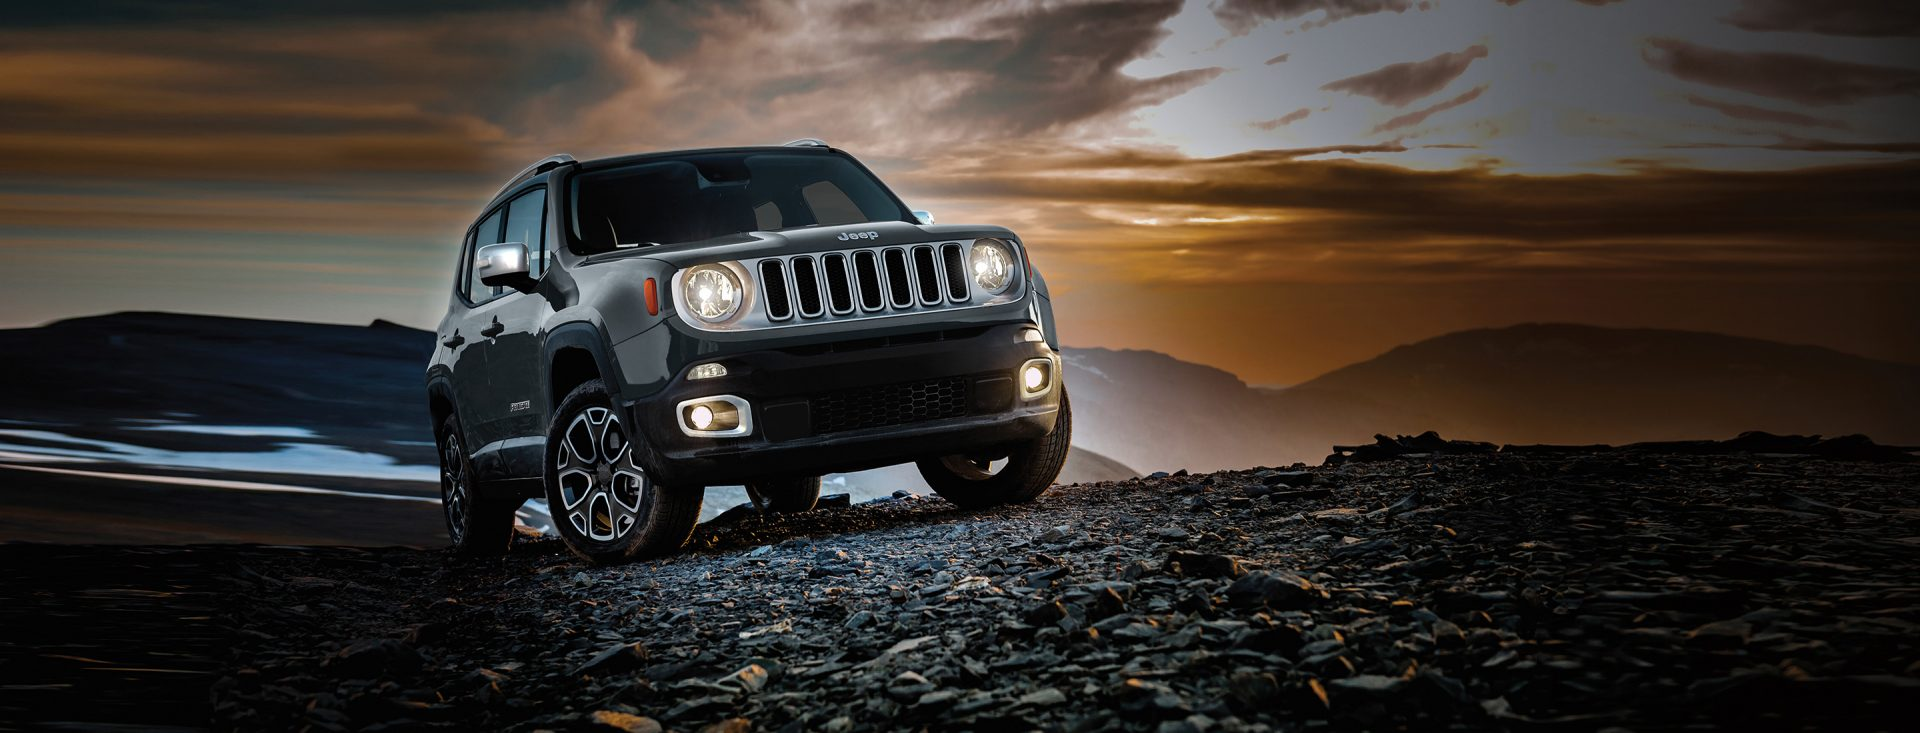 2017-Jeep-Renegade-VLP-Hero-Limited